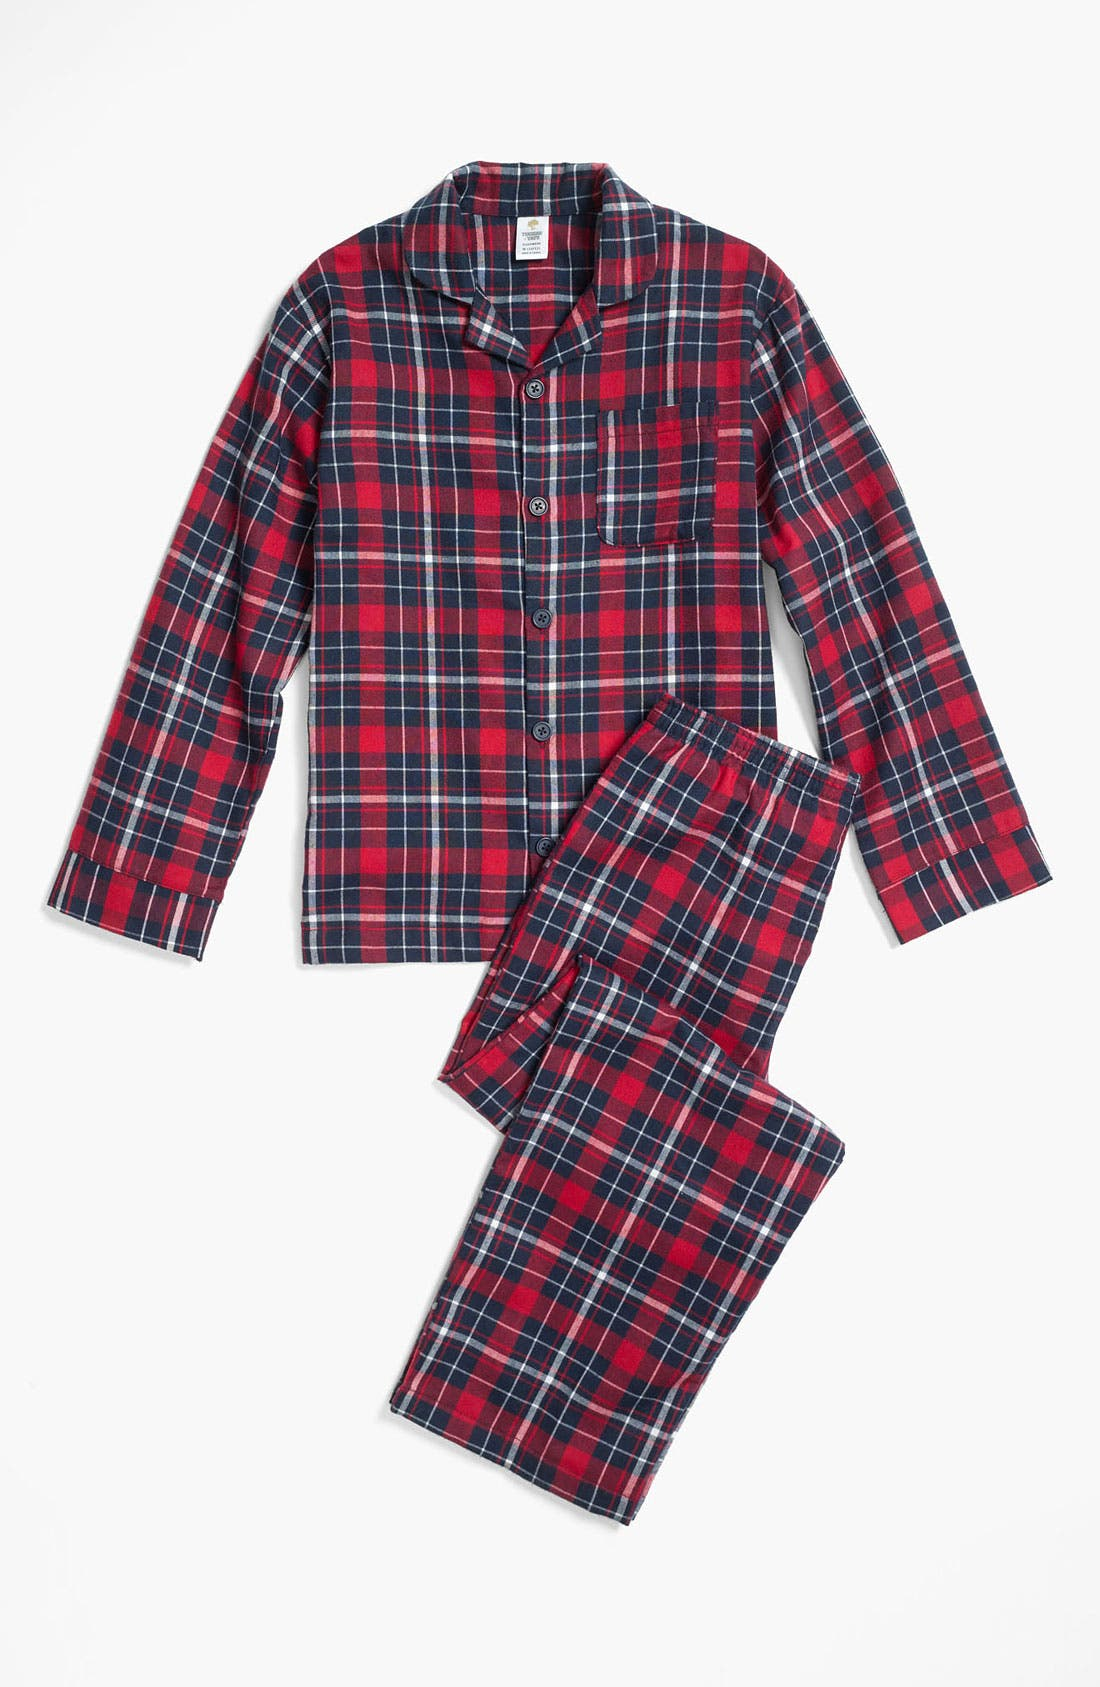 Alternate Image 1 Selected - Tucker + Tate Flannel Pajama Set (Little Boys & Big Boys)